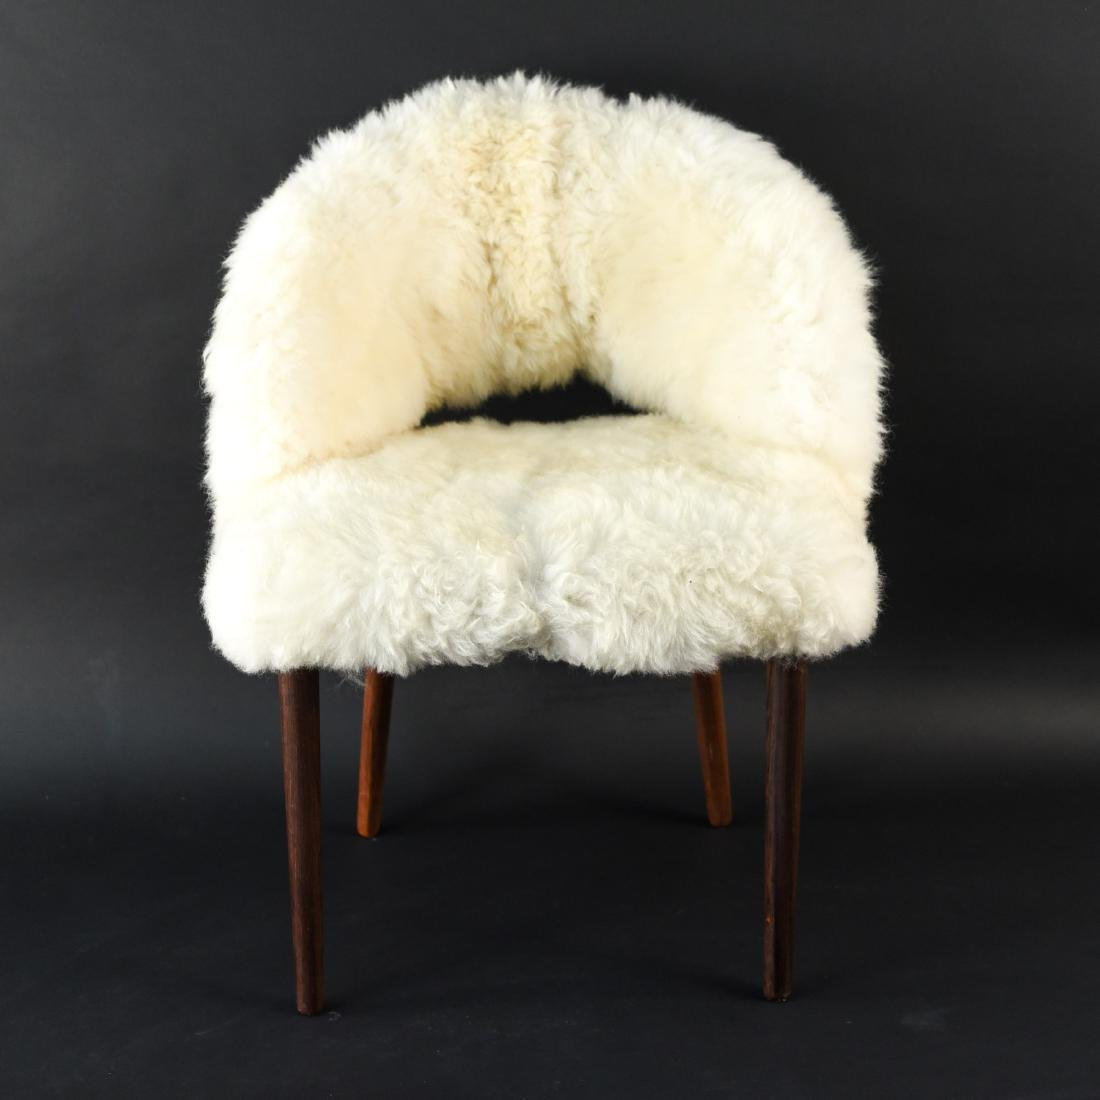 DANISH FRODE HOLM VANITY CHAIR IN LAMBS WOOL